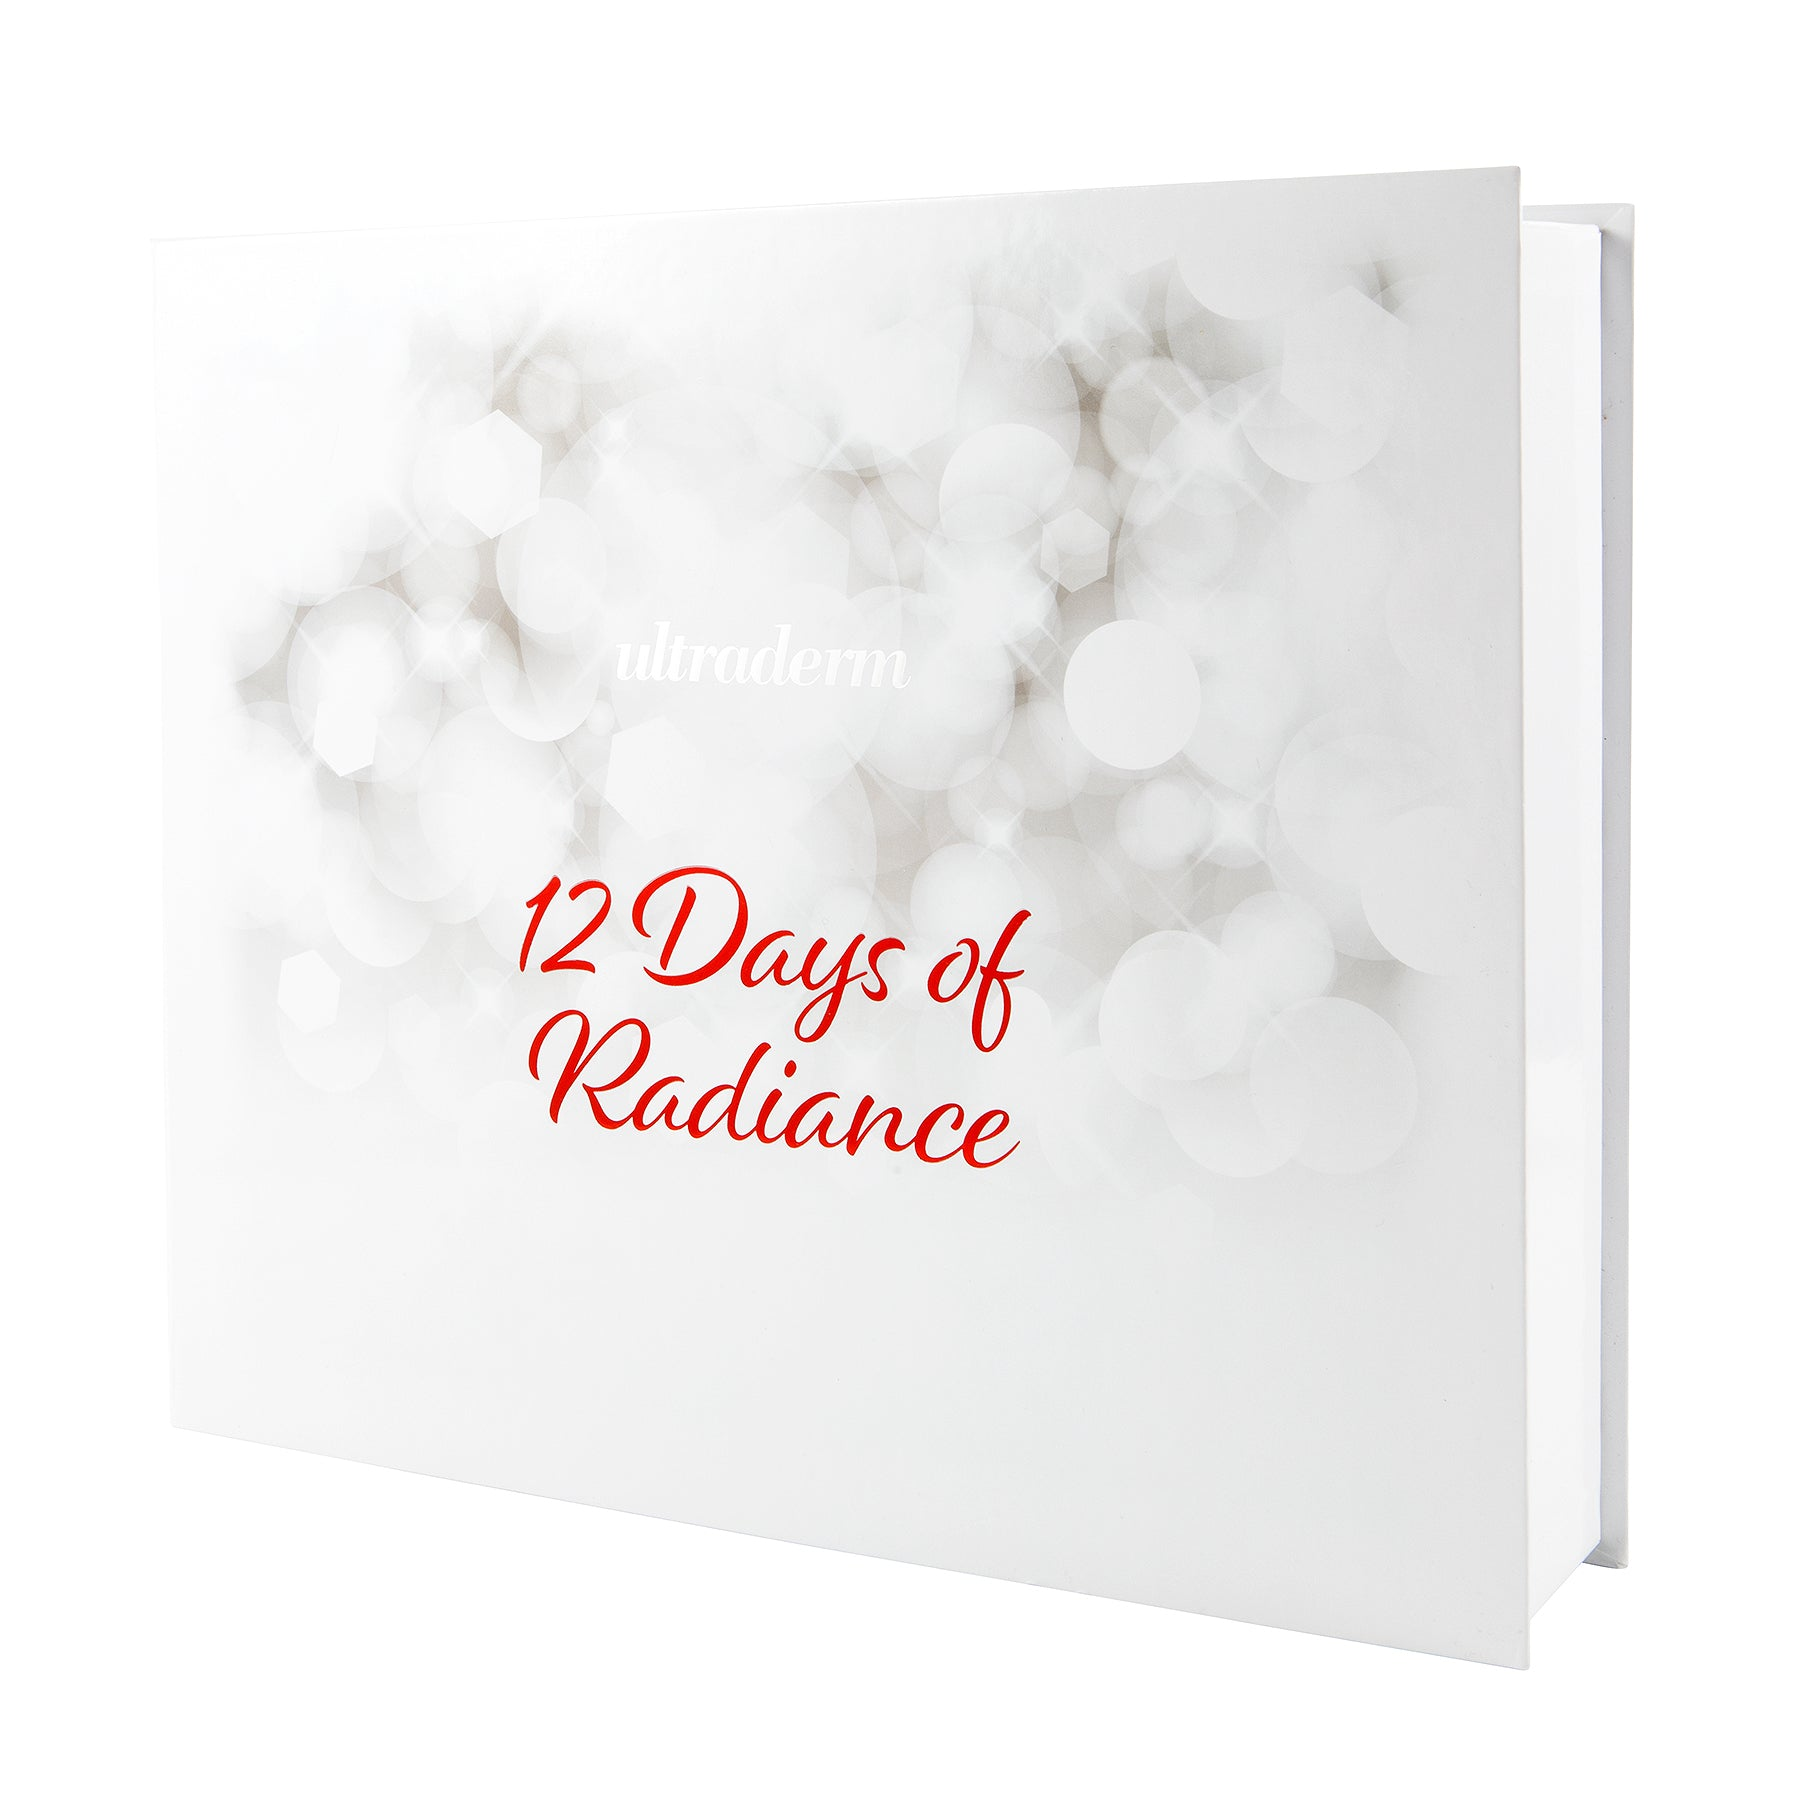 Ultraderm 12 Days of Radiance. The ultimate skincare advent calendar 2019